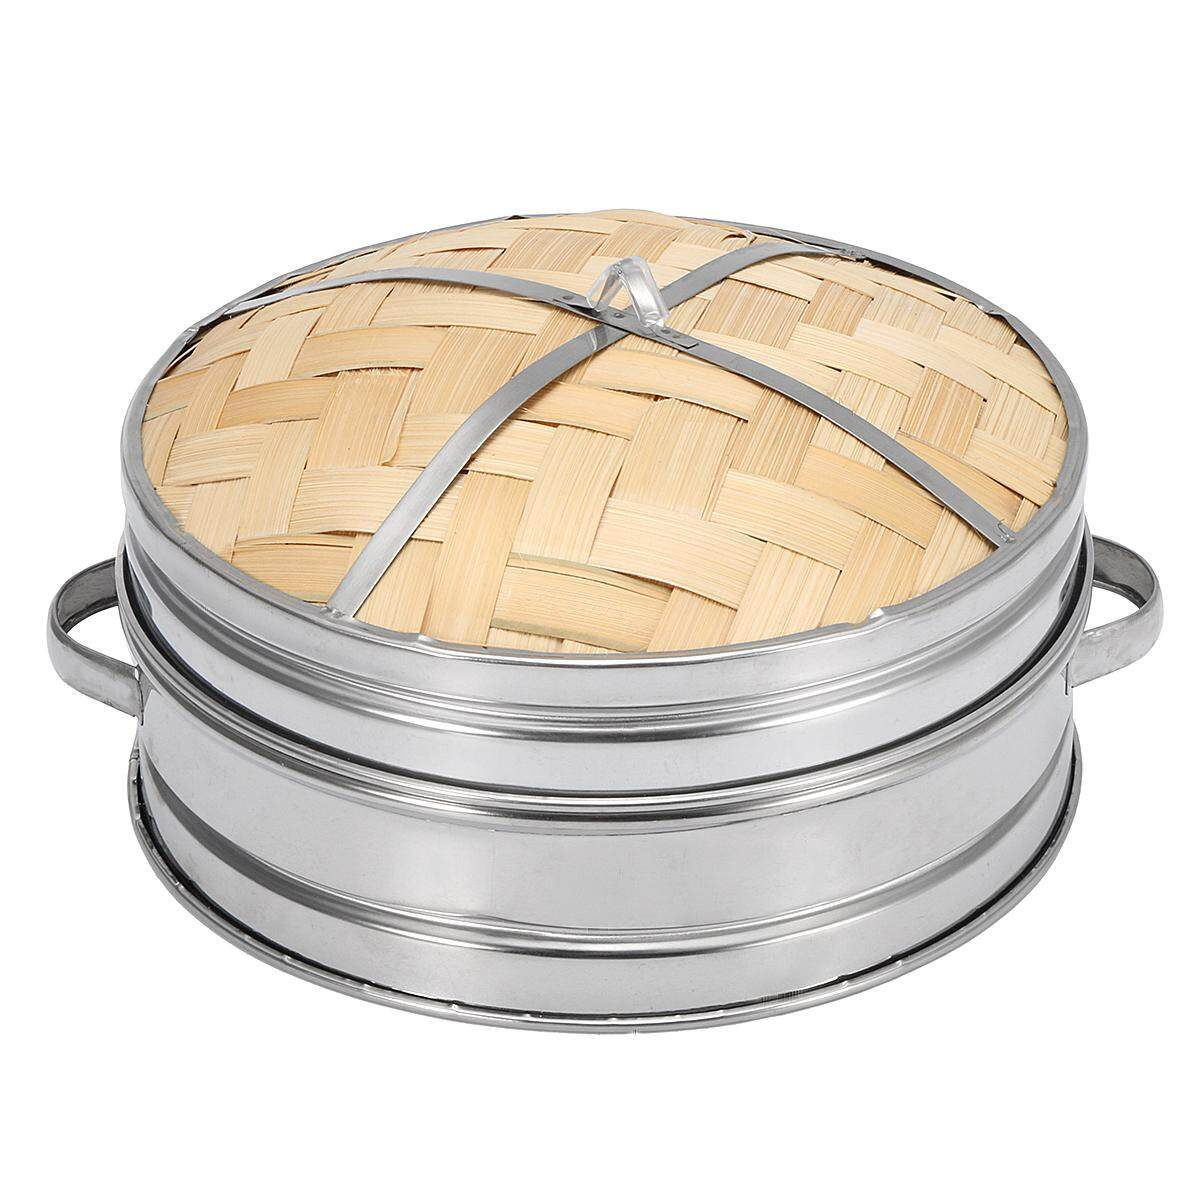 Bamboo Steamer Kitchen Cookware Basket Cooker Set Stainless Steel Lid Cook Tool By Glimmer.